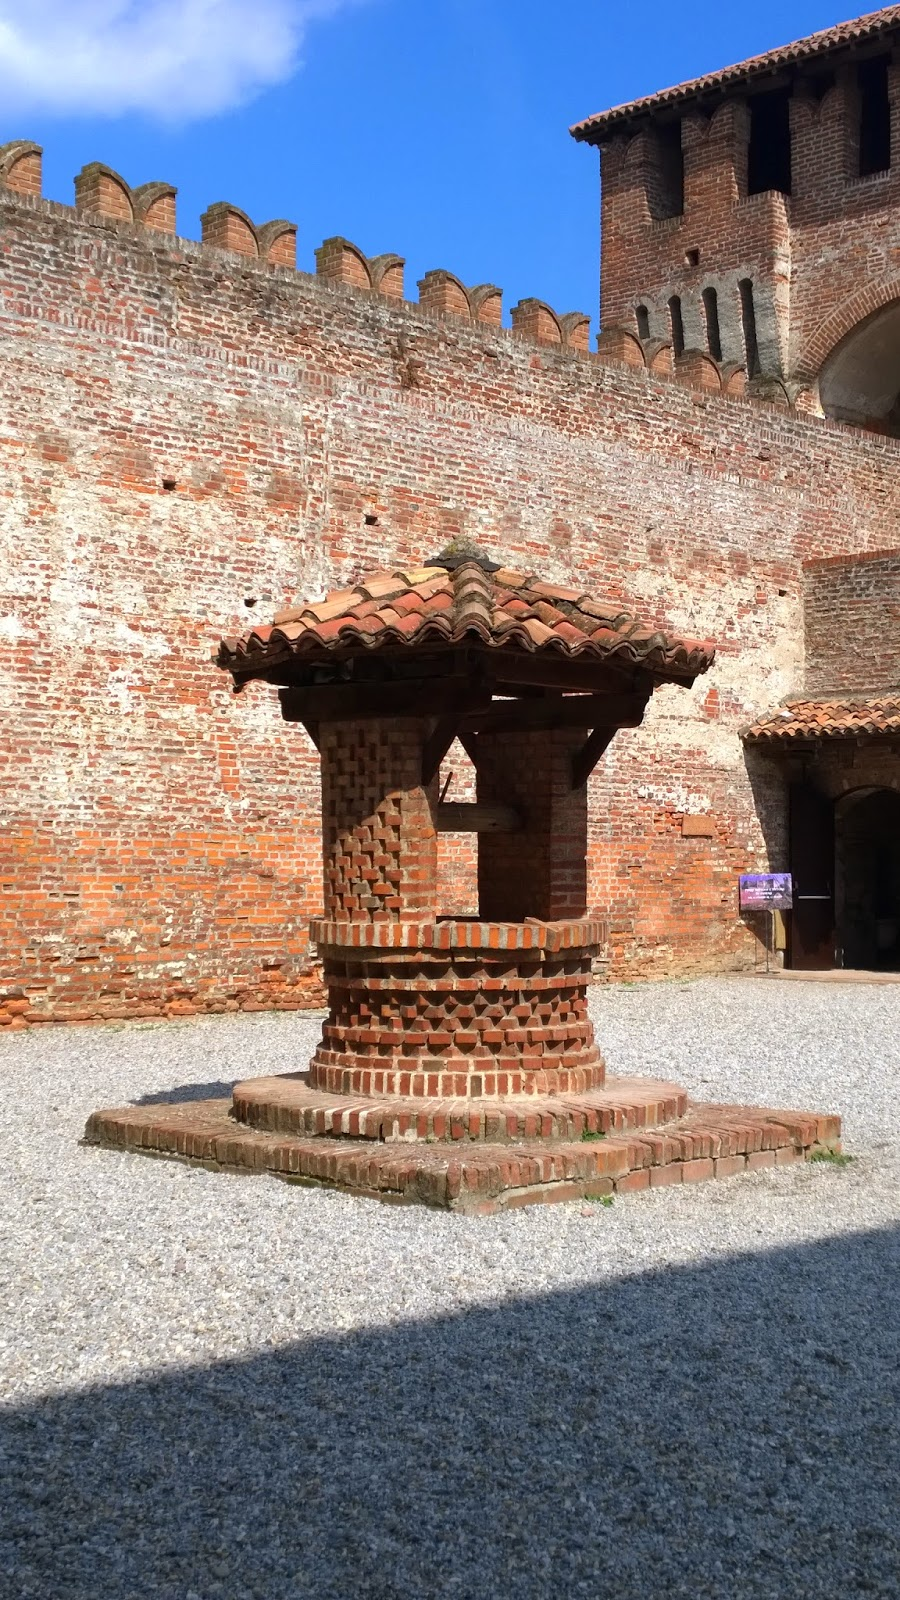 The well inside the Sforza castle at Soncino